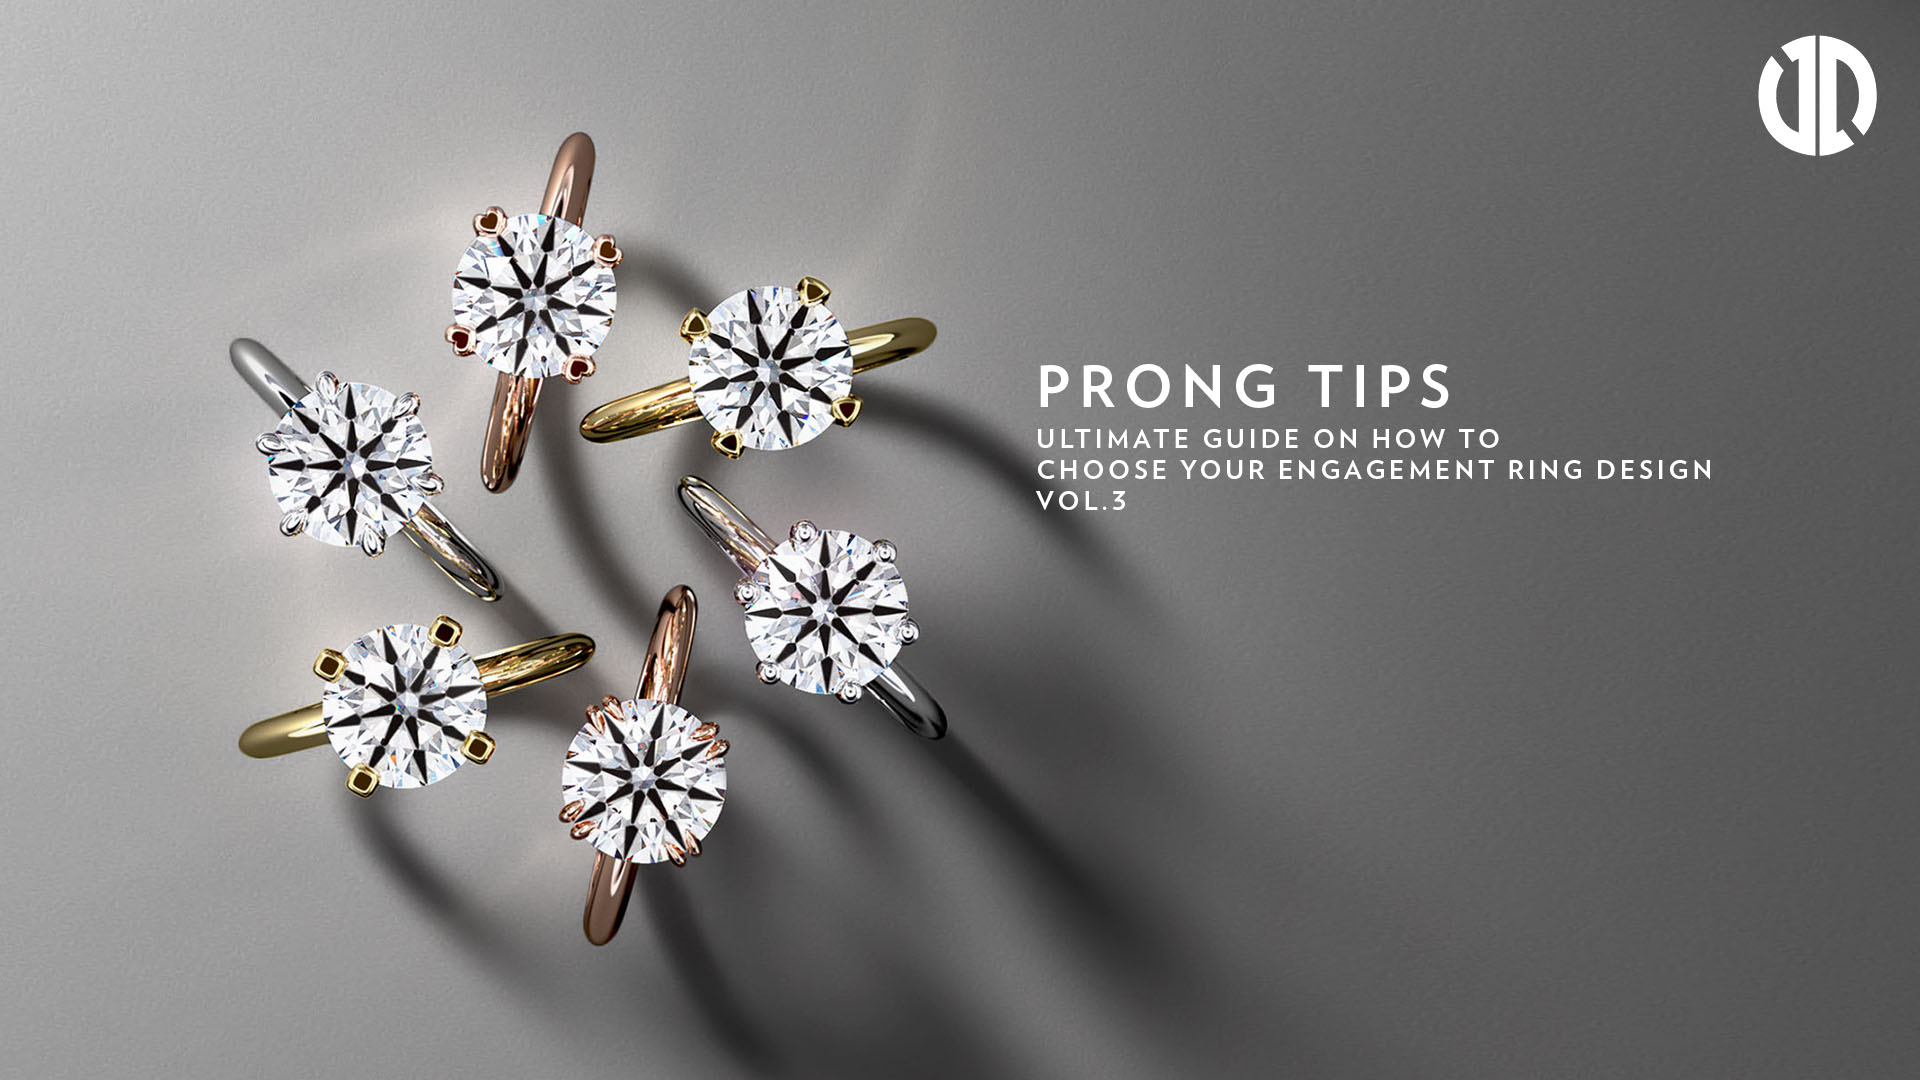 How to Choose your Engagement Ring Design (Part 3 - Prong Tip Designs)